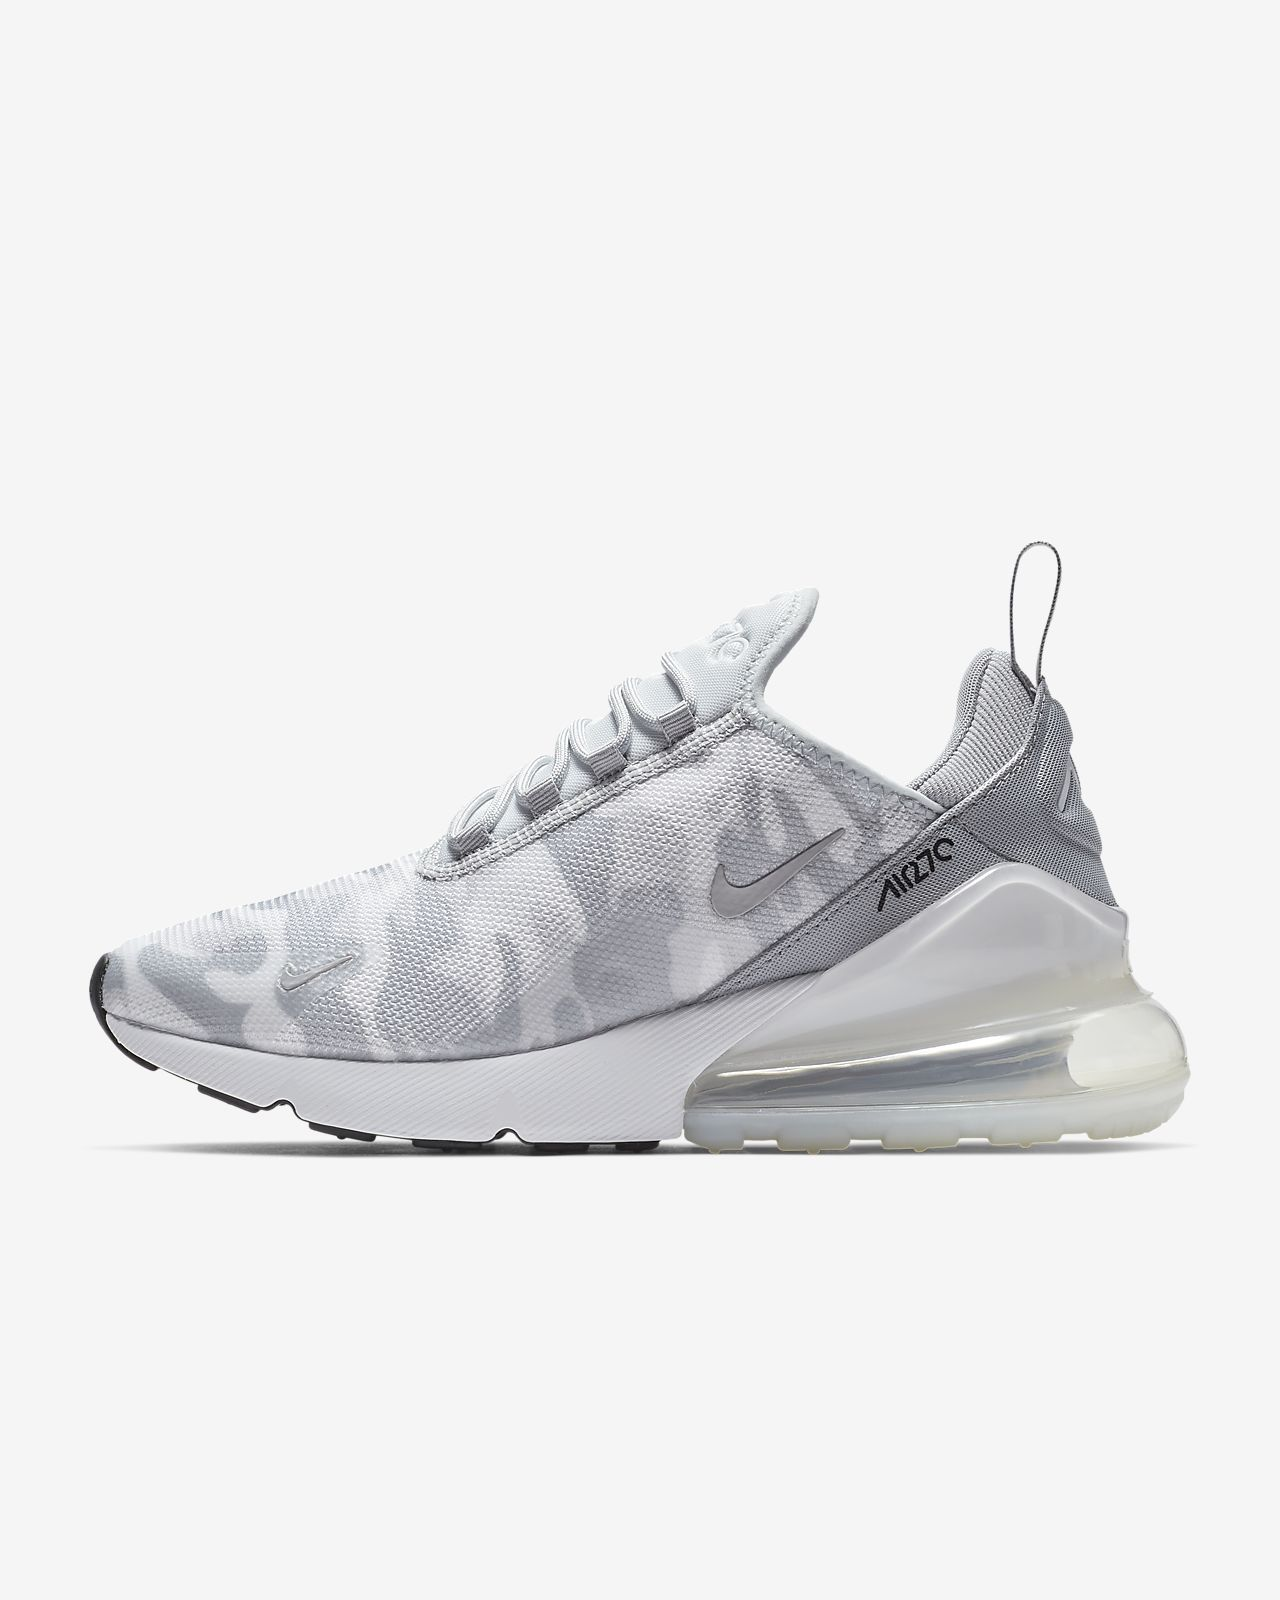 Nike Air Max 270 SE Floral Women's Shoe